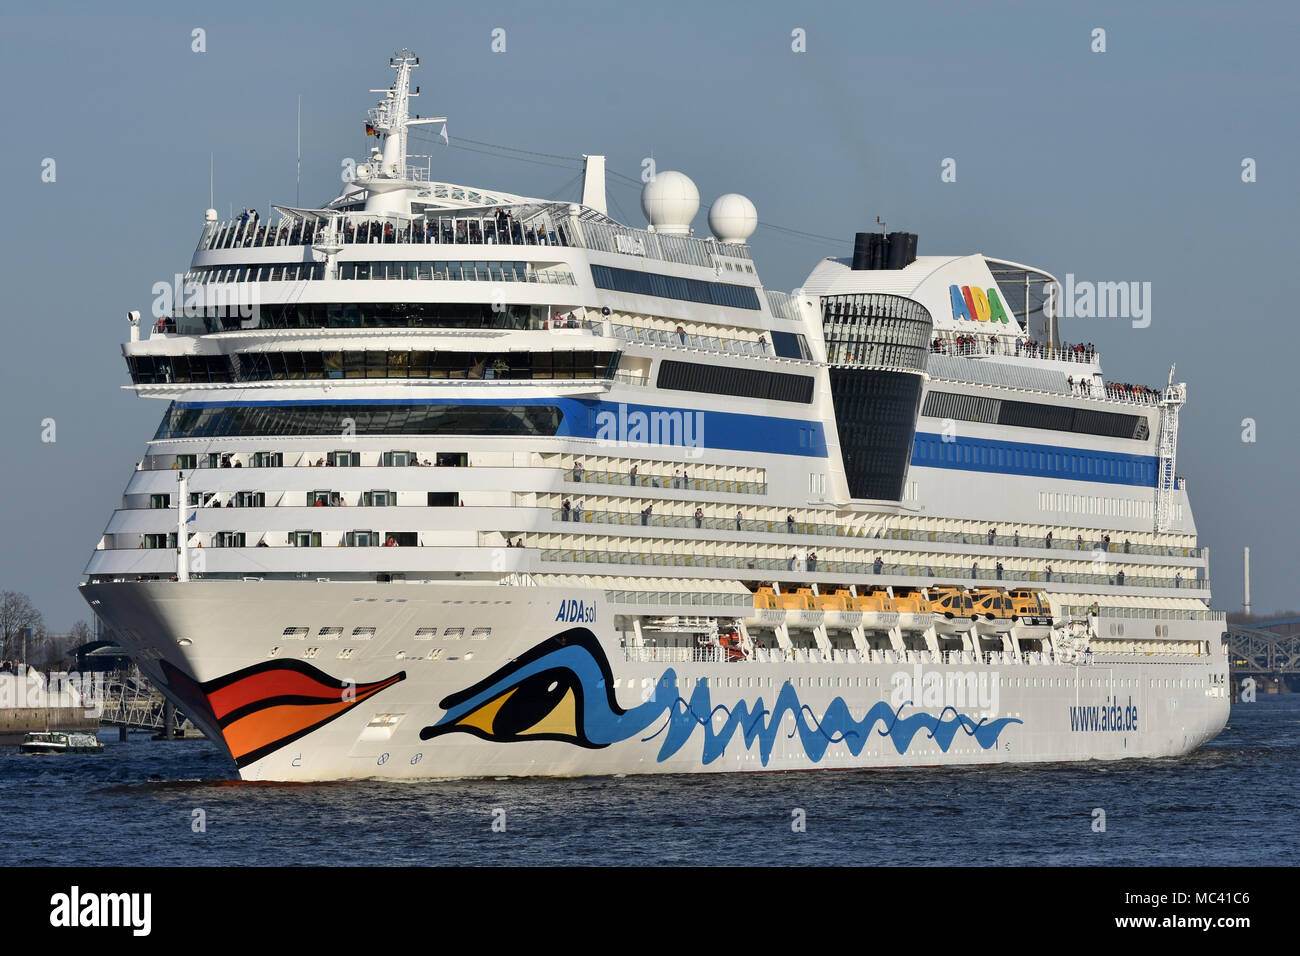 AIDAsol outbound from Hamburg cruise terminal - Stock Image